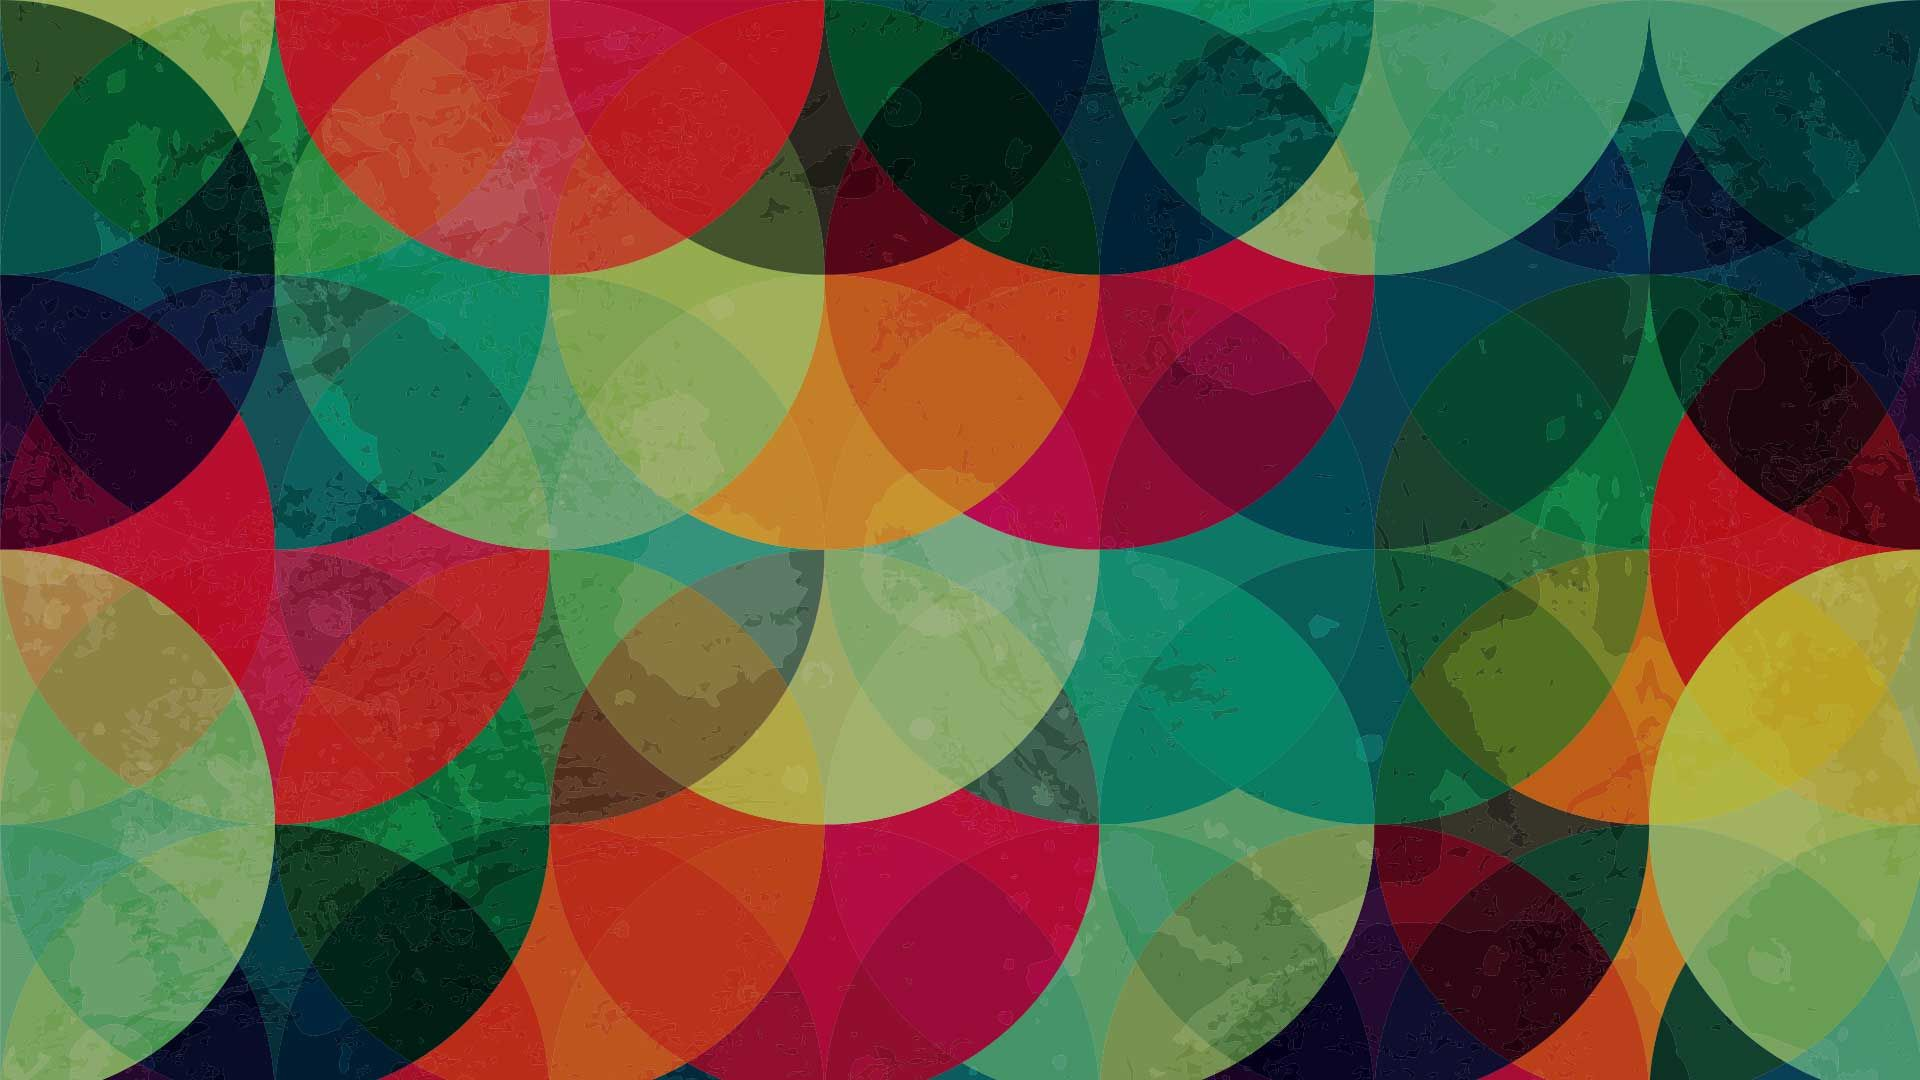 Pin by Arata on Tech Brewster wallpaper, Abstract